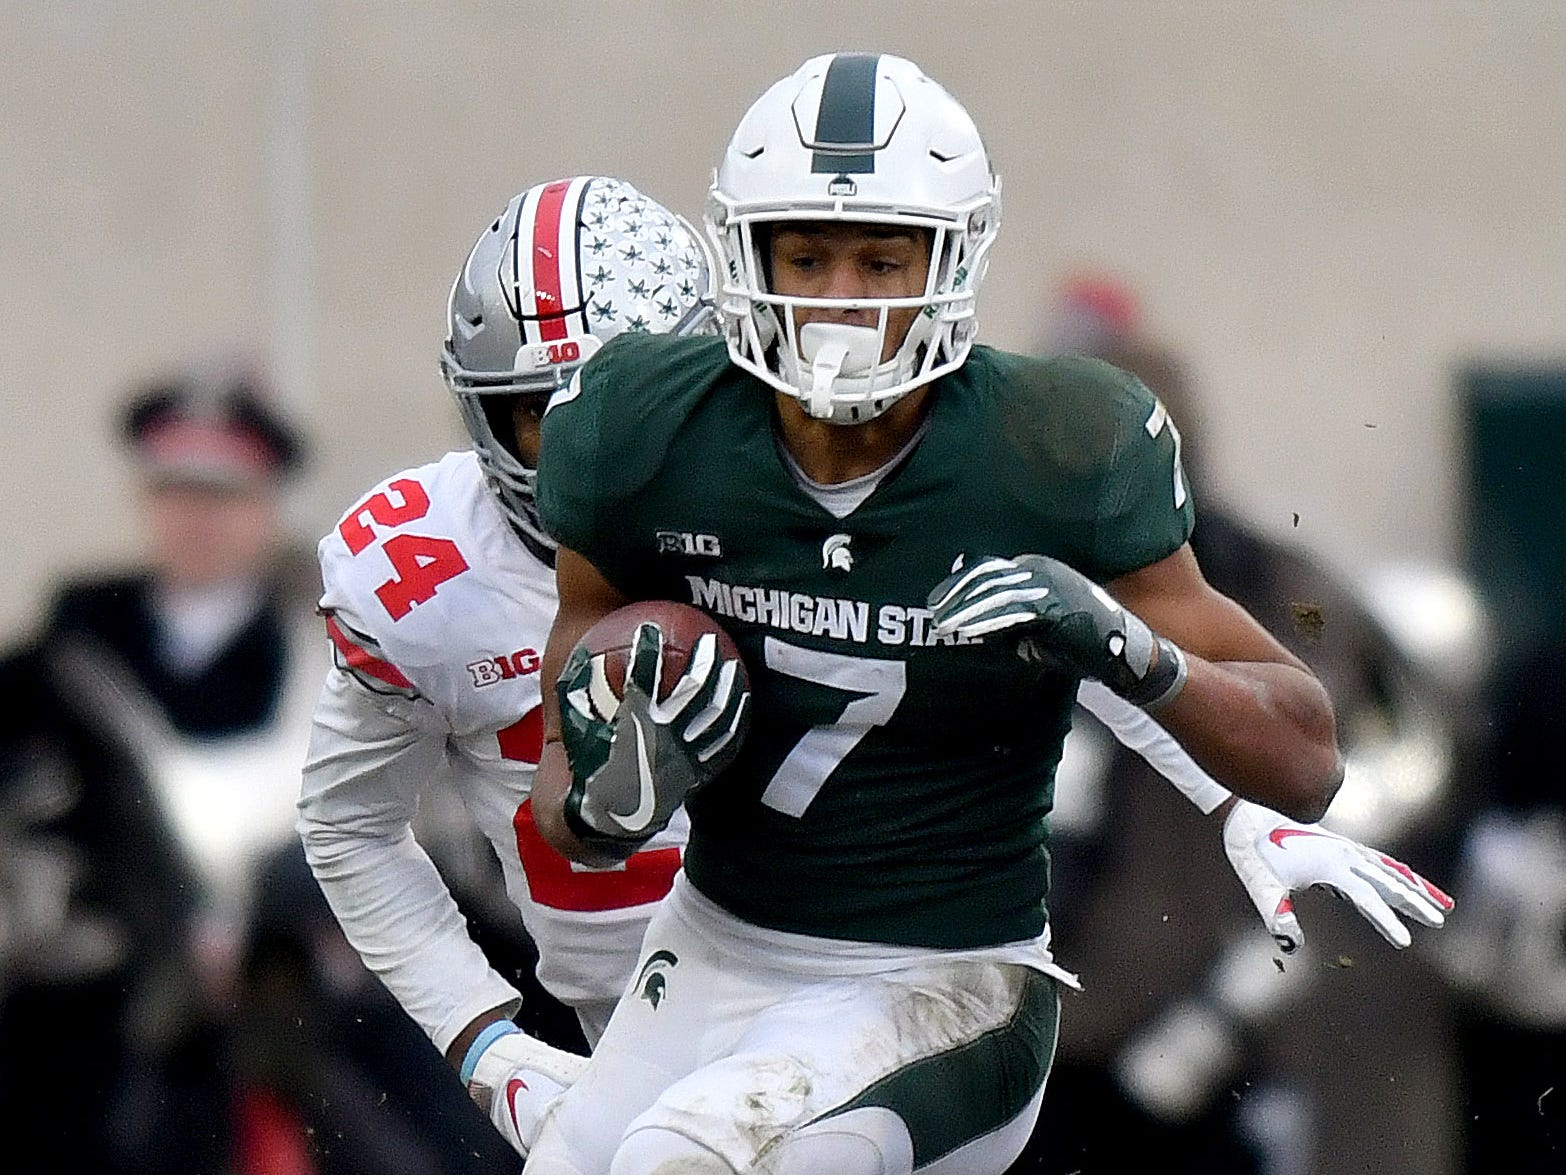 Injuries take toll on Michigan State's fleet of wide receivers